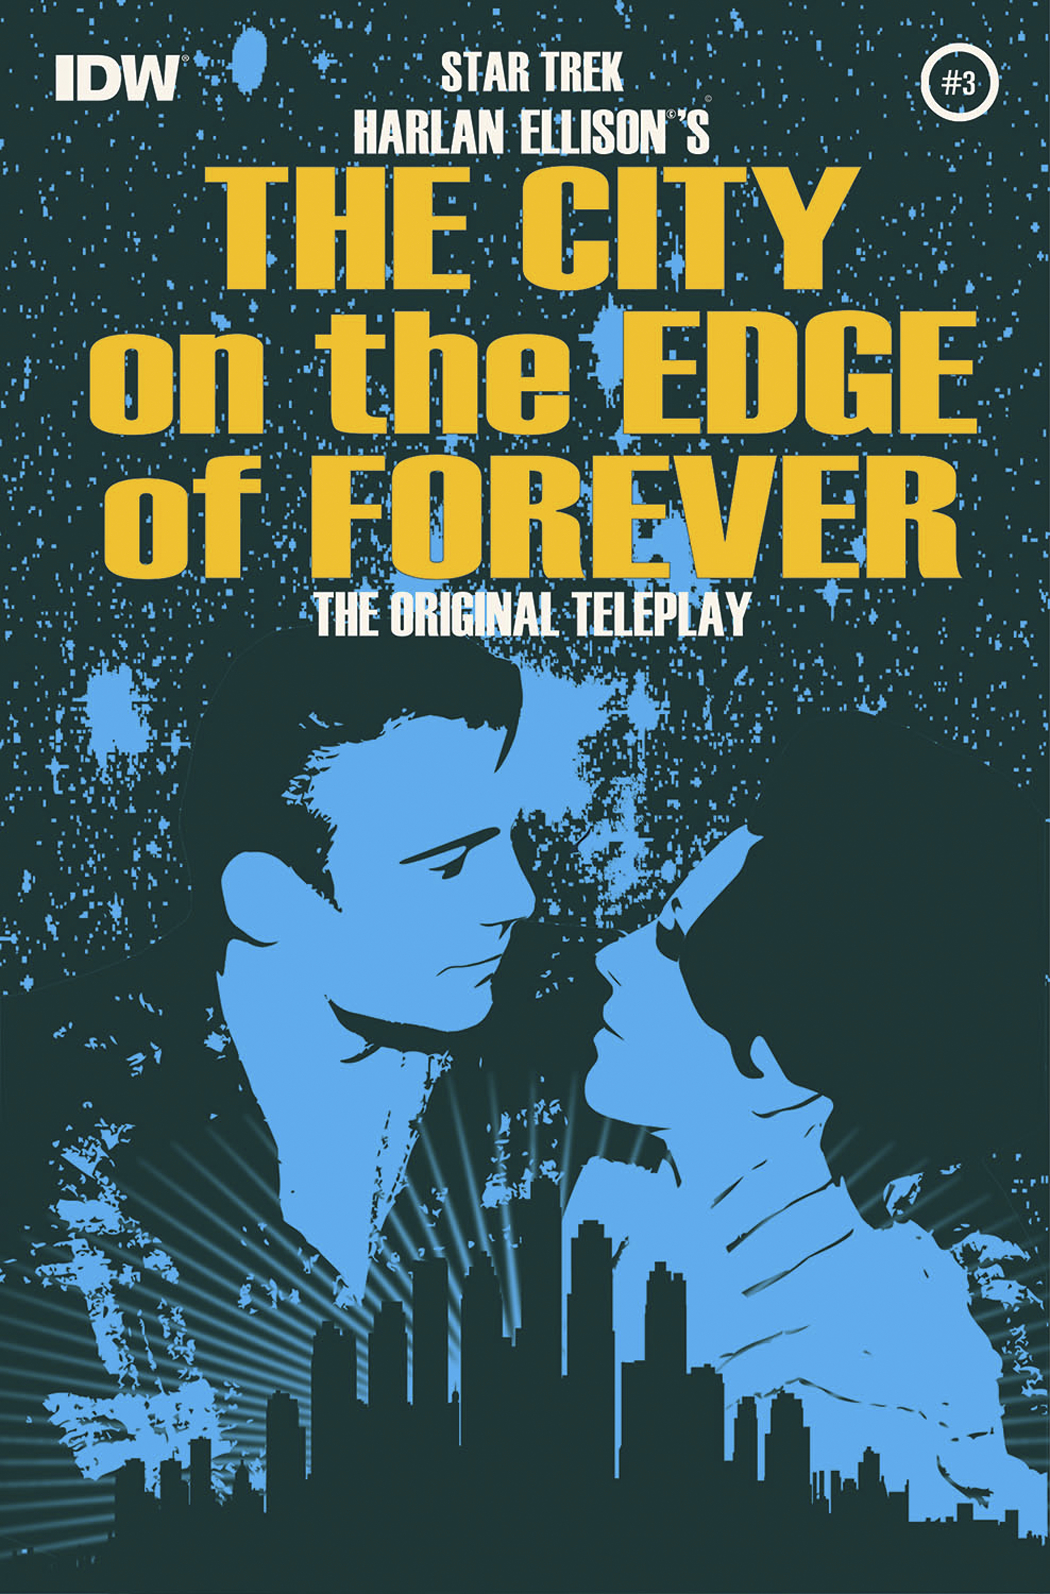 STAR TREK CITY O/T EDGE OF FOREVER #3